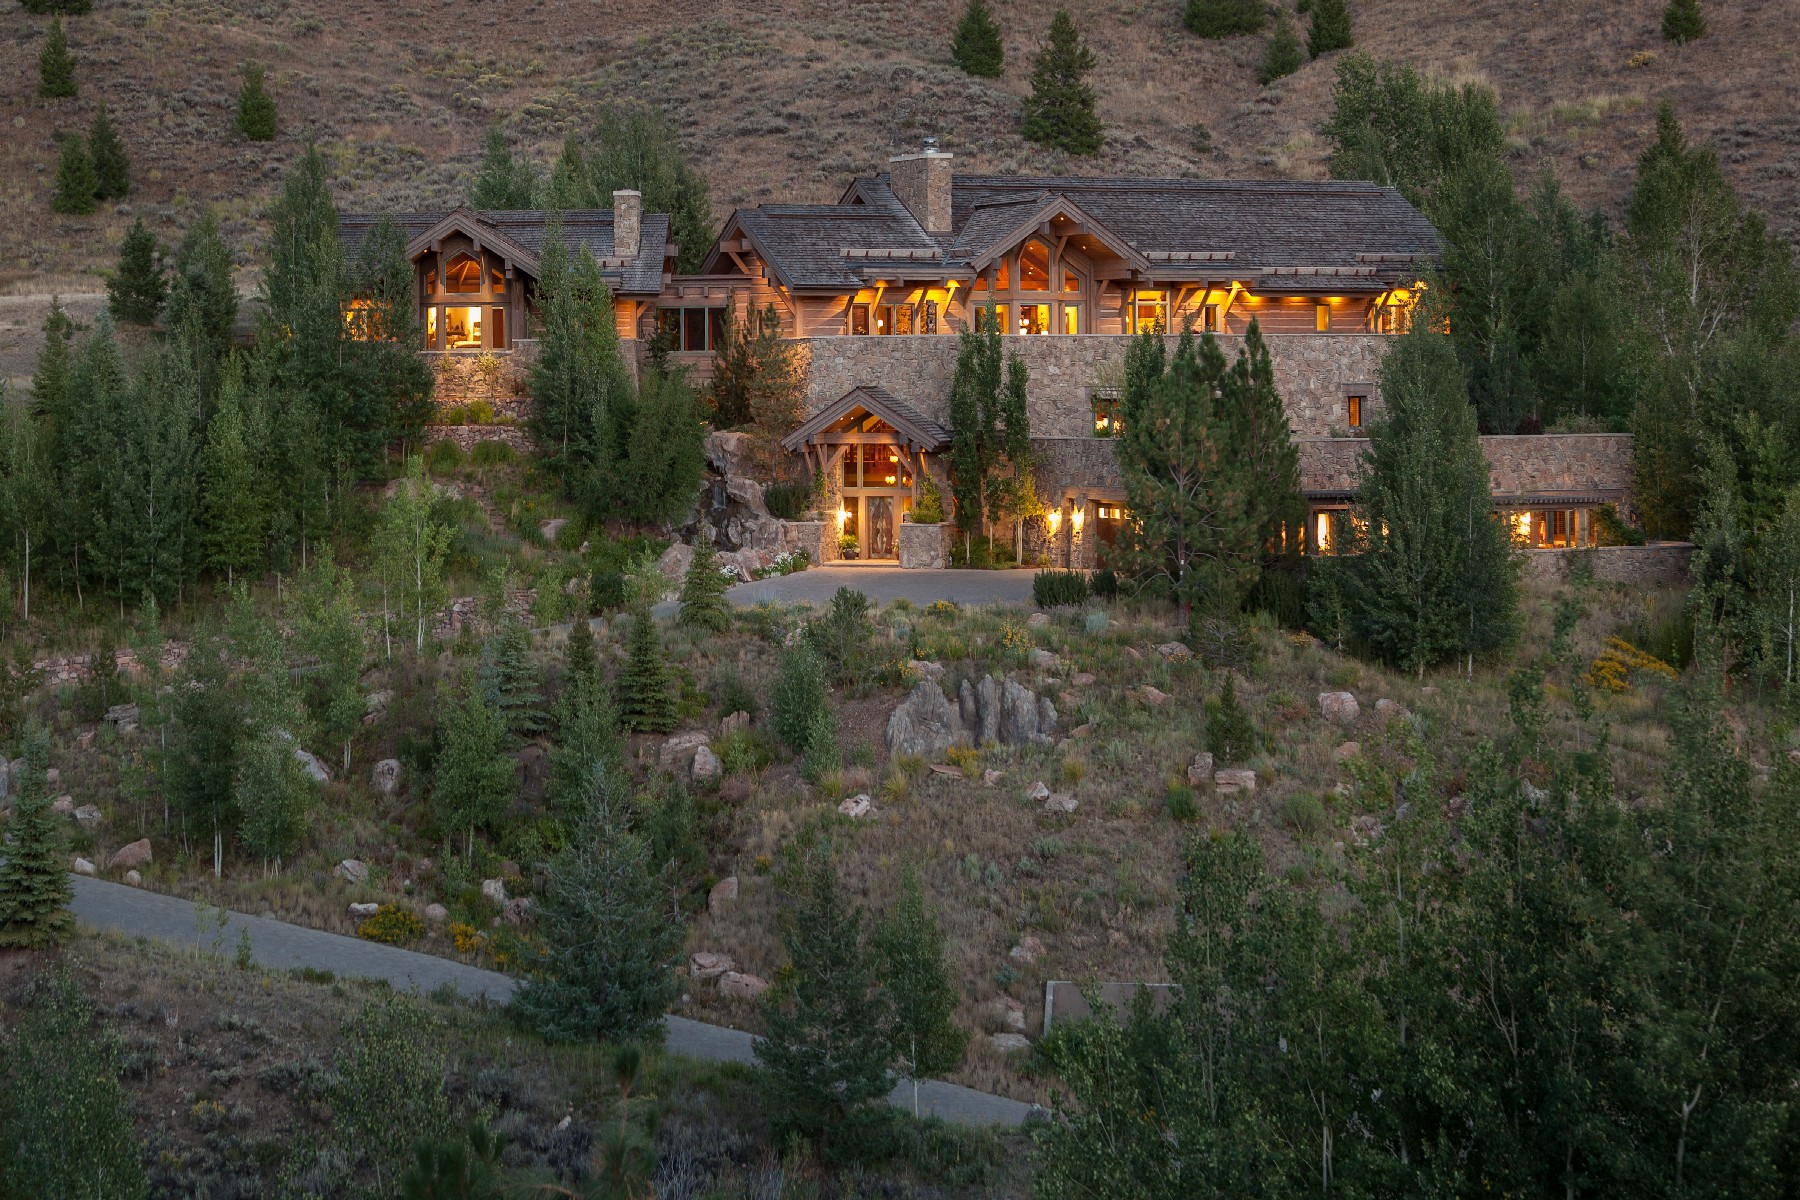 Single Family Home for Active at Legacy Sun Valley Estate Ketchum, Idaho 83340 United States